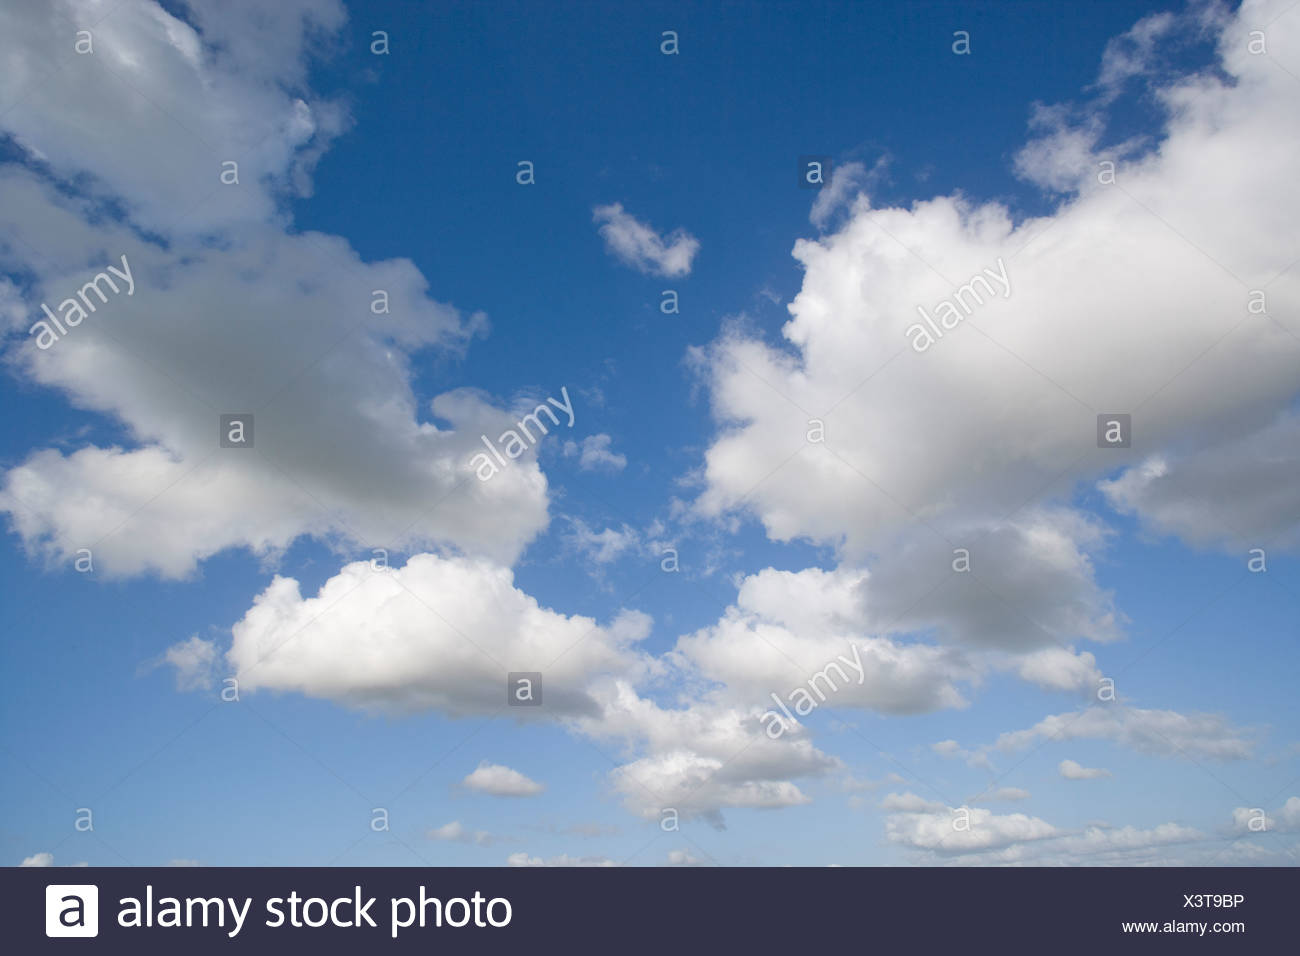 Clouds in sunny blue sky - Stock Image